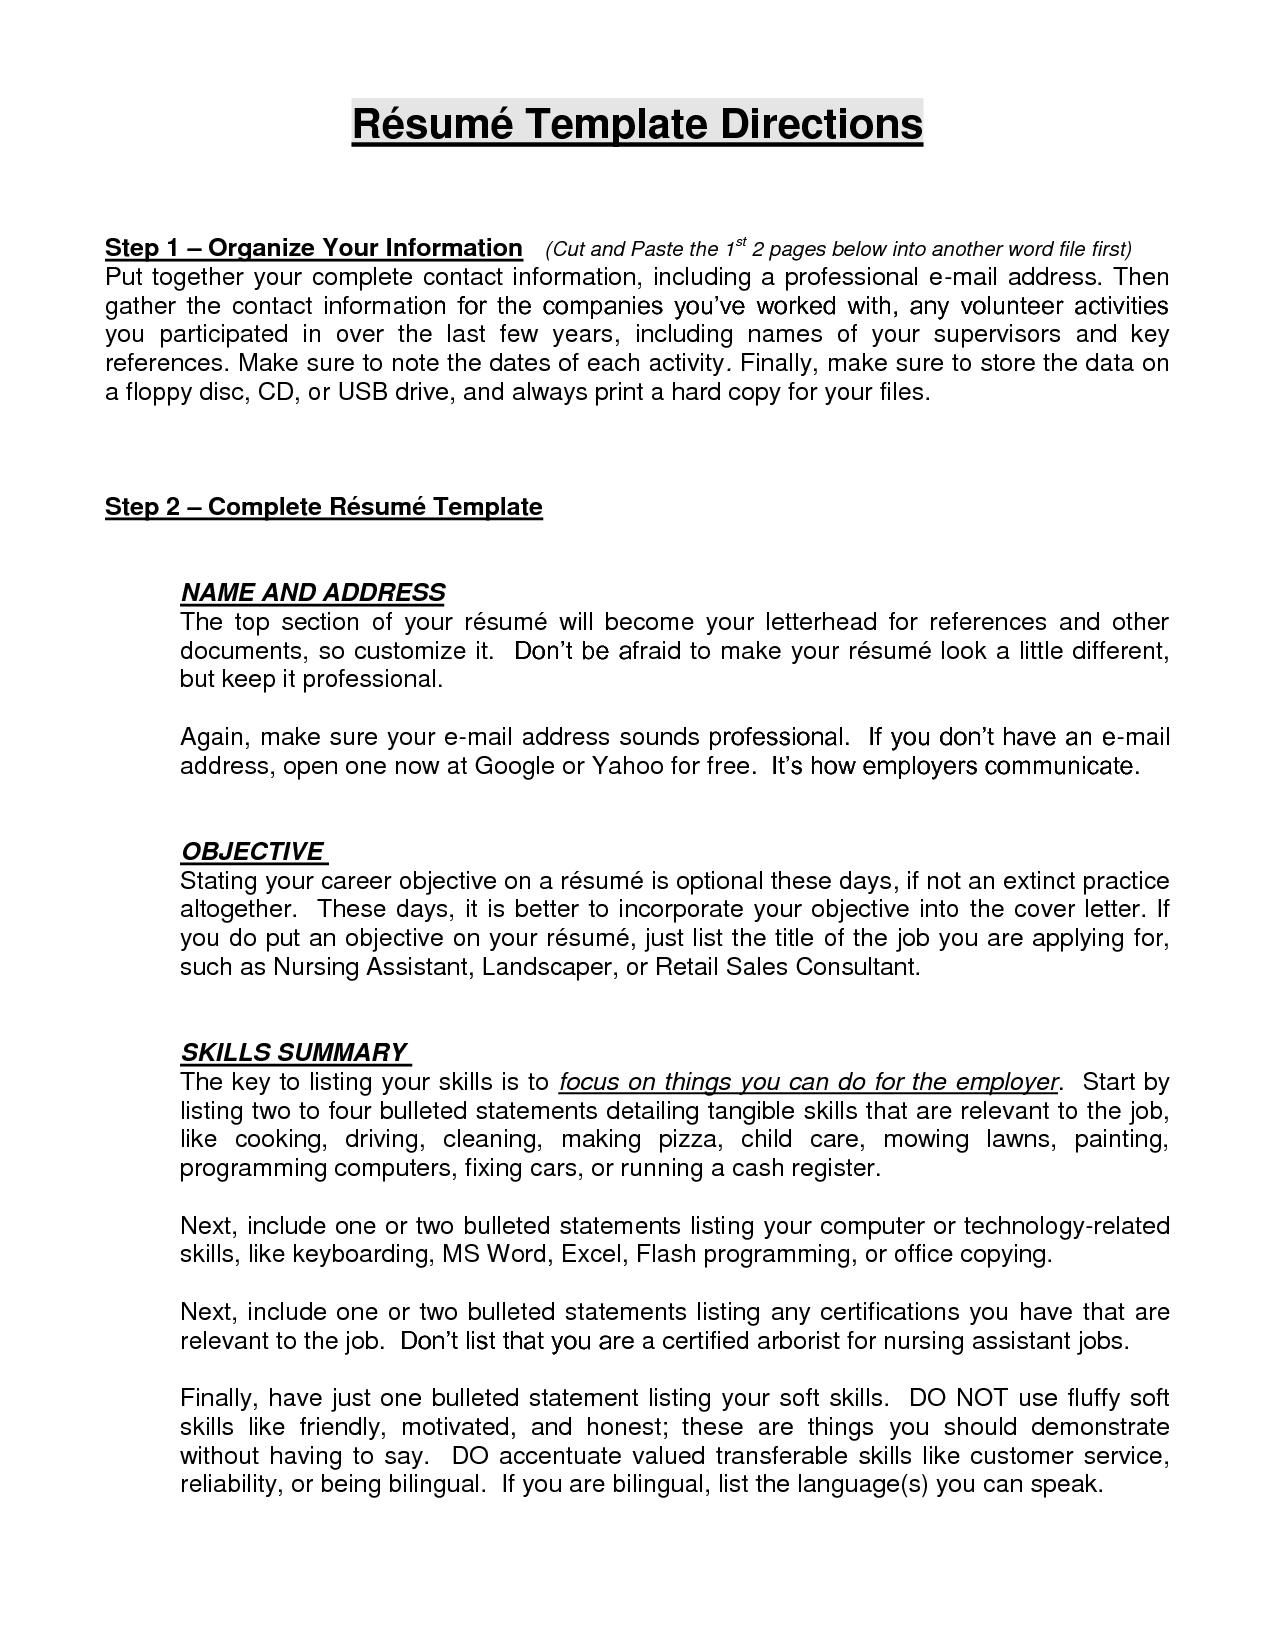 Captivating Resume Objective Statements Ideas   Http://www.jobresume.website/resume  Objective Statements Ideas/